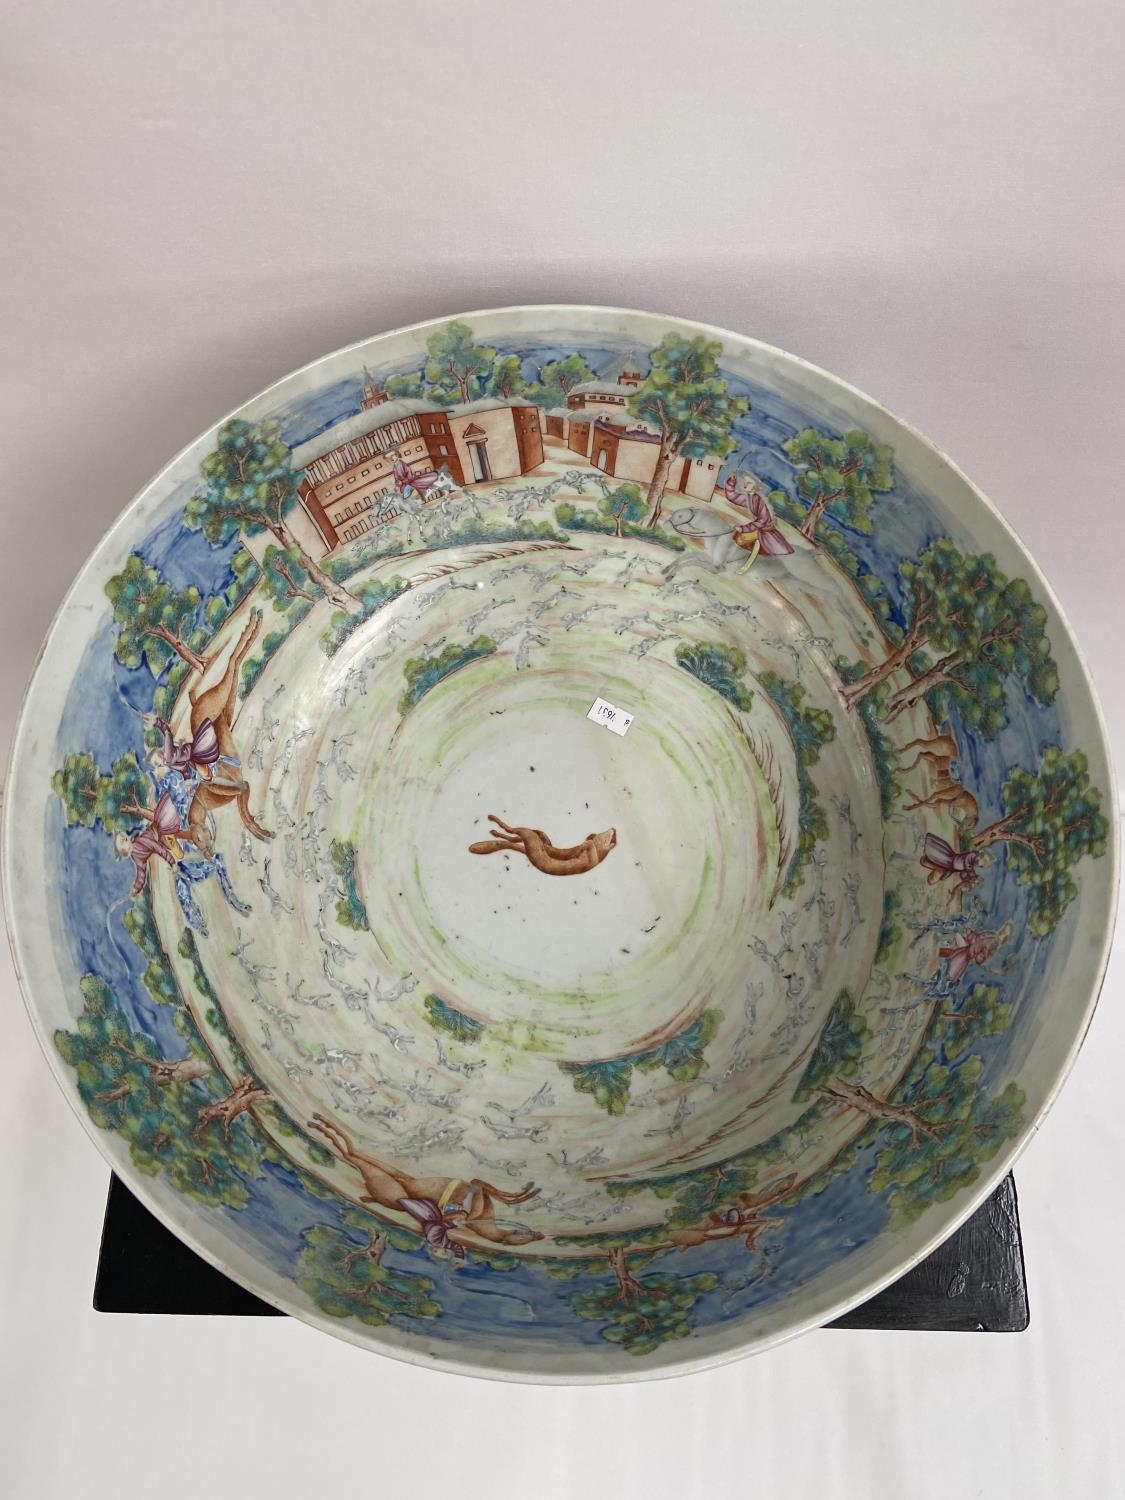 A LARGE 19TH CENTURY CHINESE HAND PAINTED BOWL. EXTERIOR DEPICTS CHINESE HUNTING SCENE PANELS. THE - Image 5 of 39